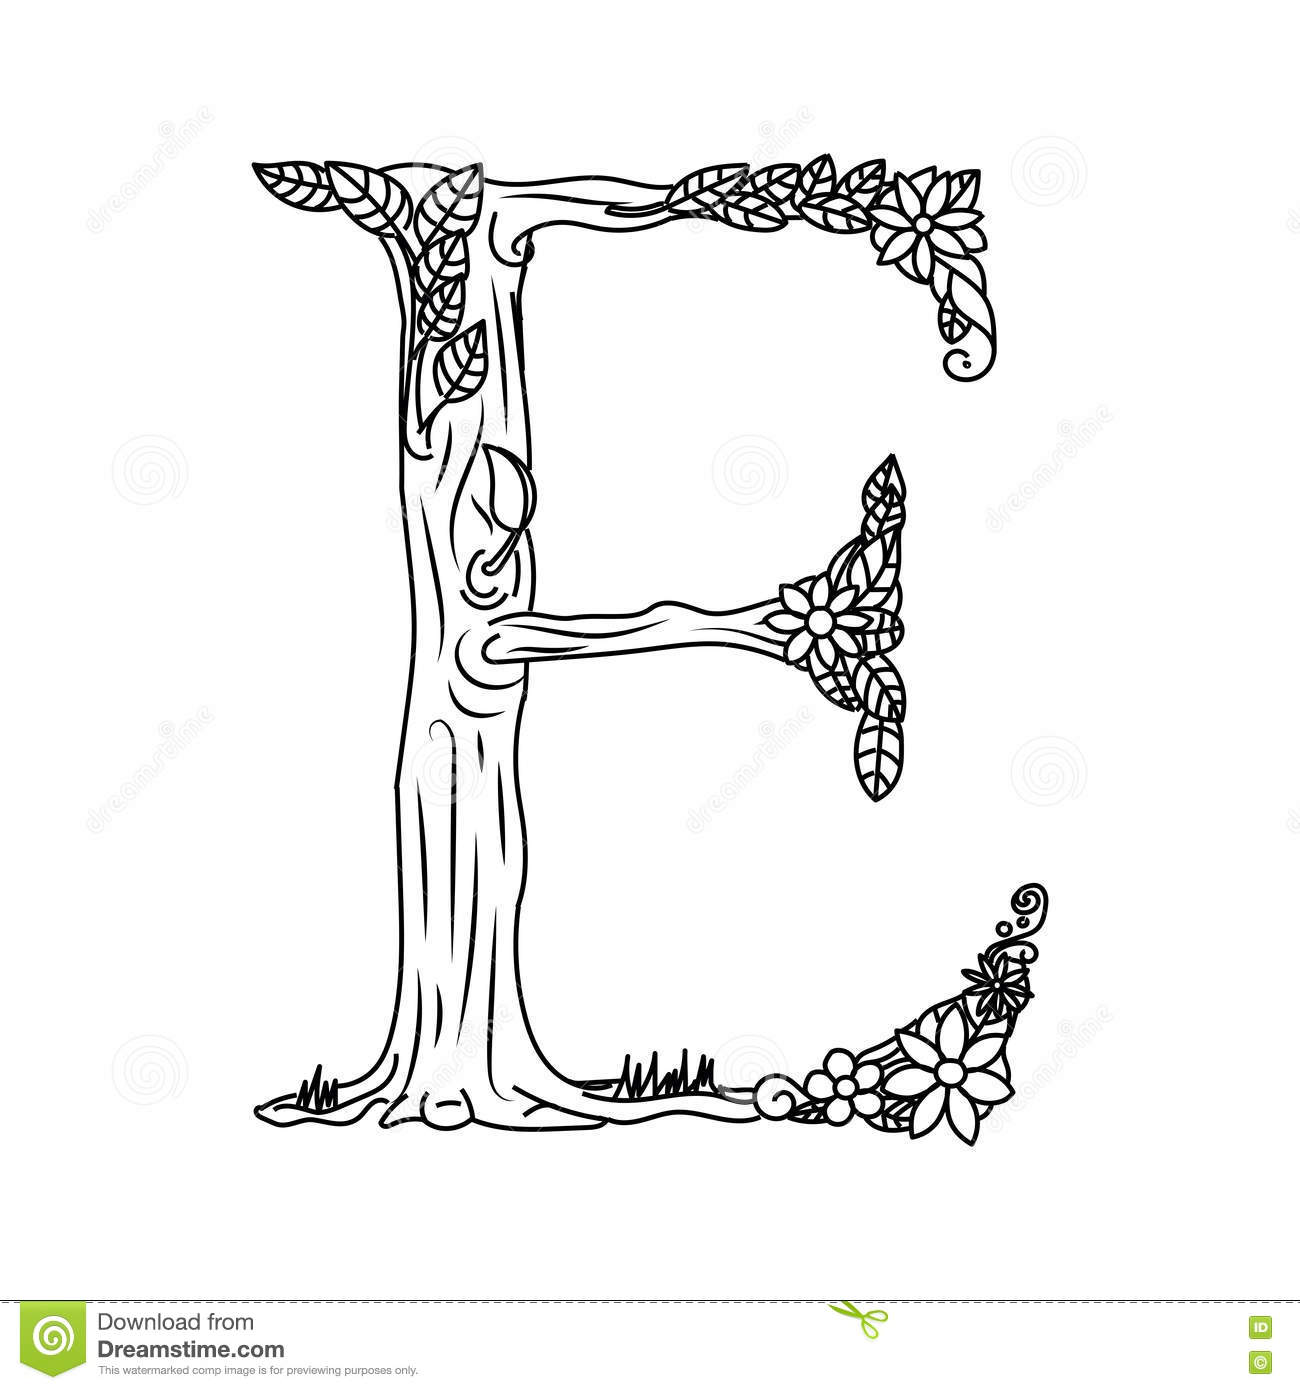 Letter E Coloring Book For Adults Vector Stock Vector - Image ...